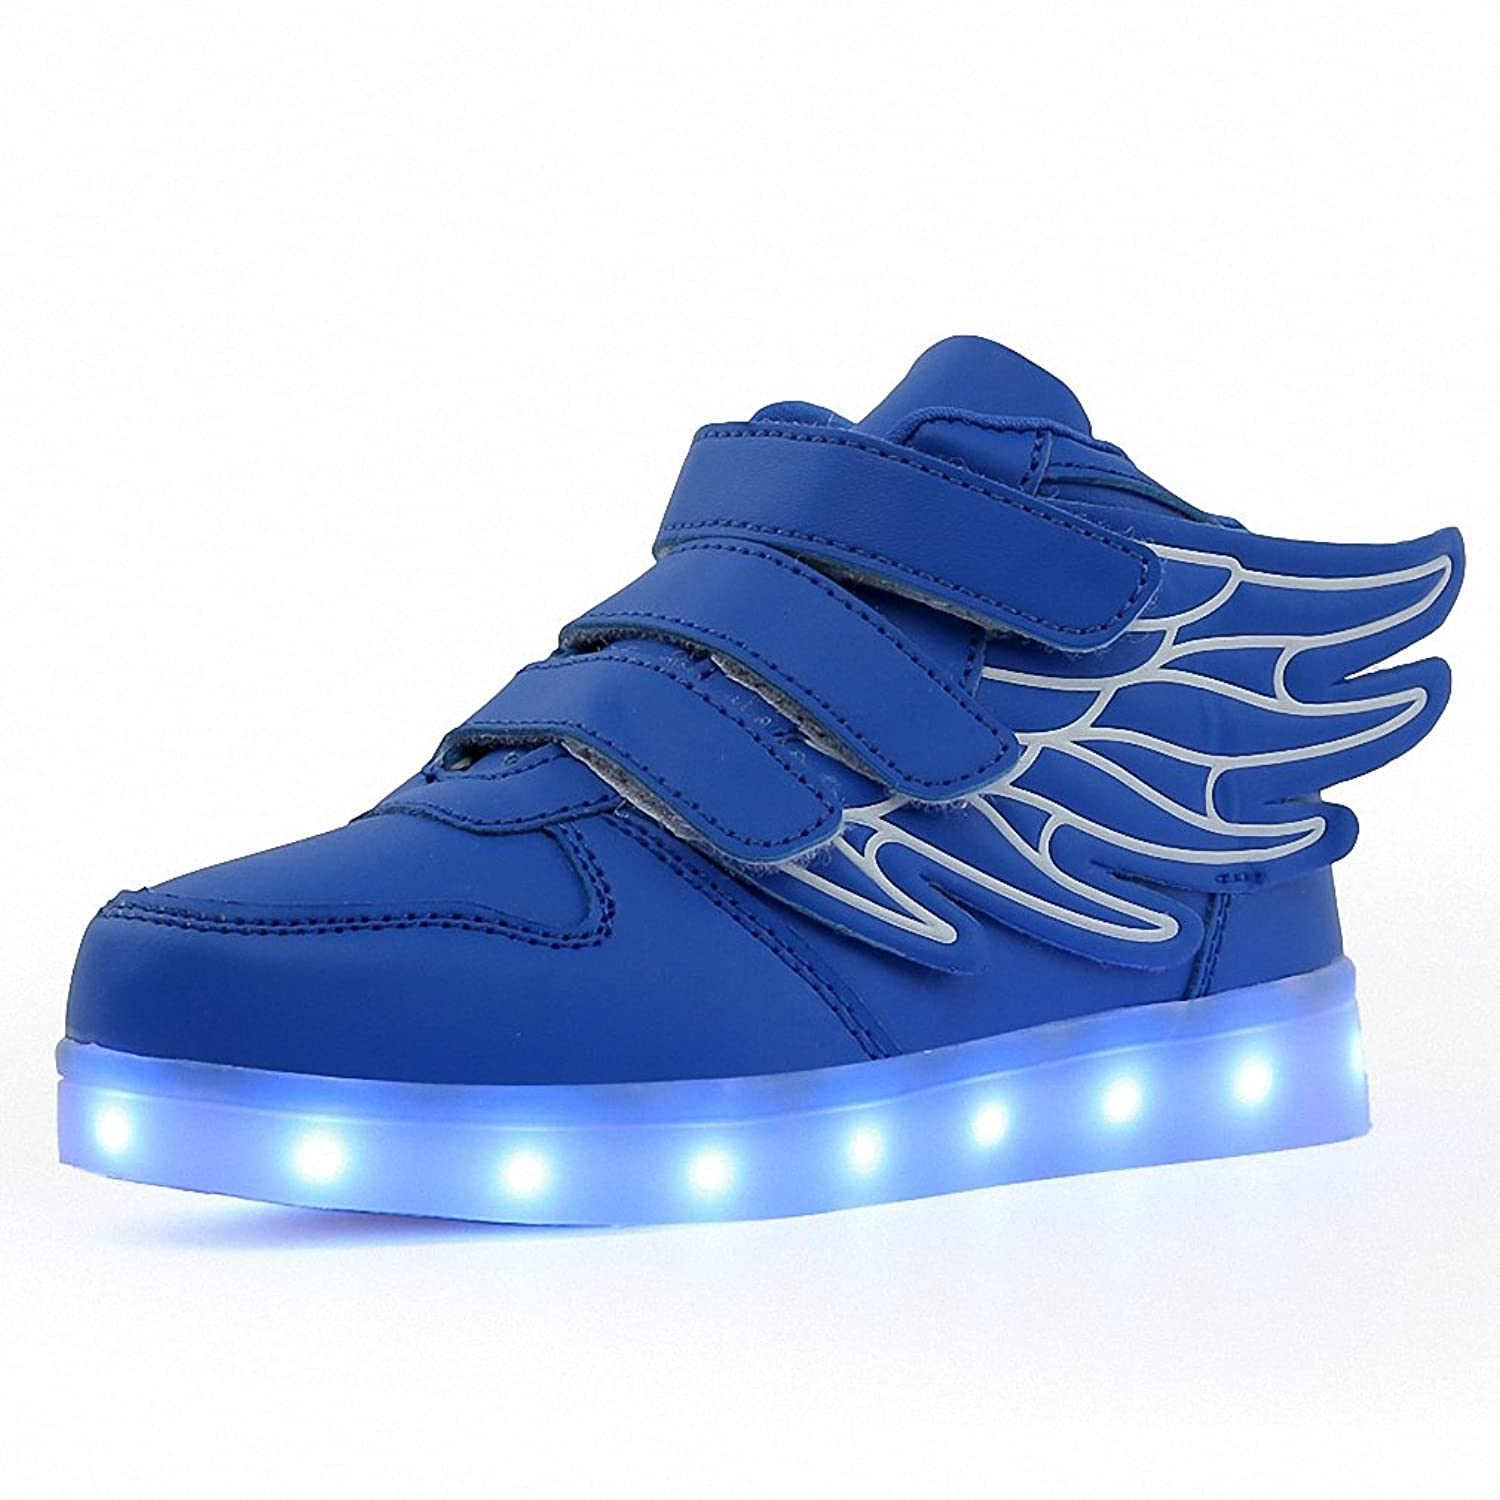 Amazon.com | New Summer Children Breathable Sneakers Fashion Sport Led Usb Luminous Lighted Shoes for Kids glowing Boys Casual Girls Flats | Sneakers